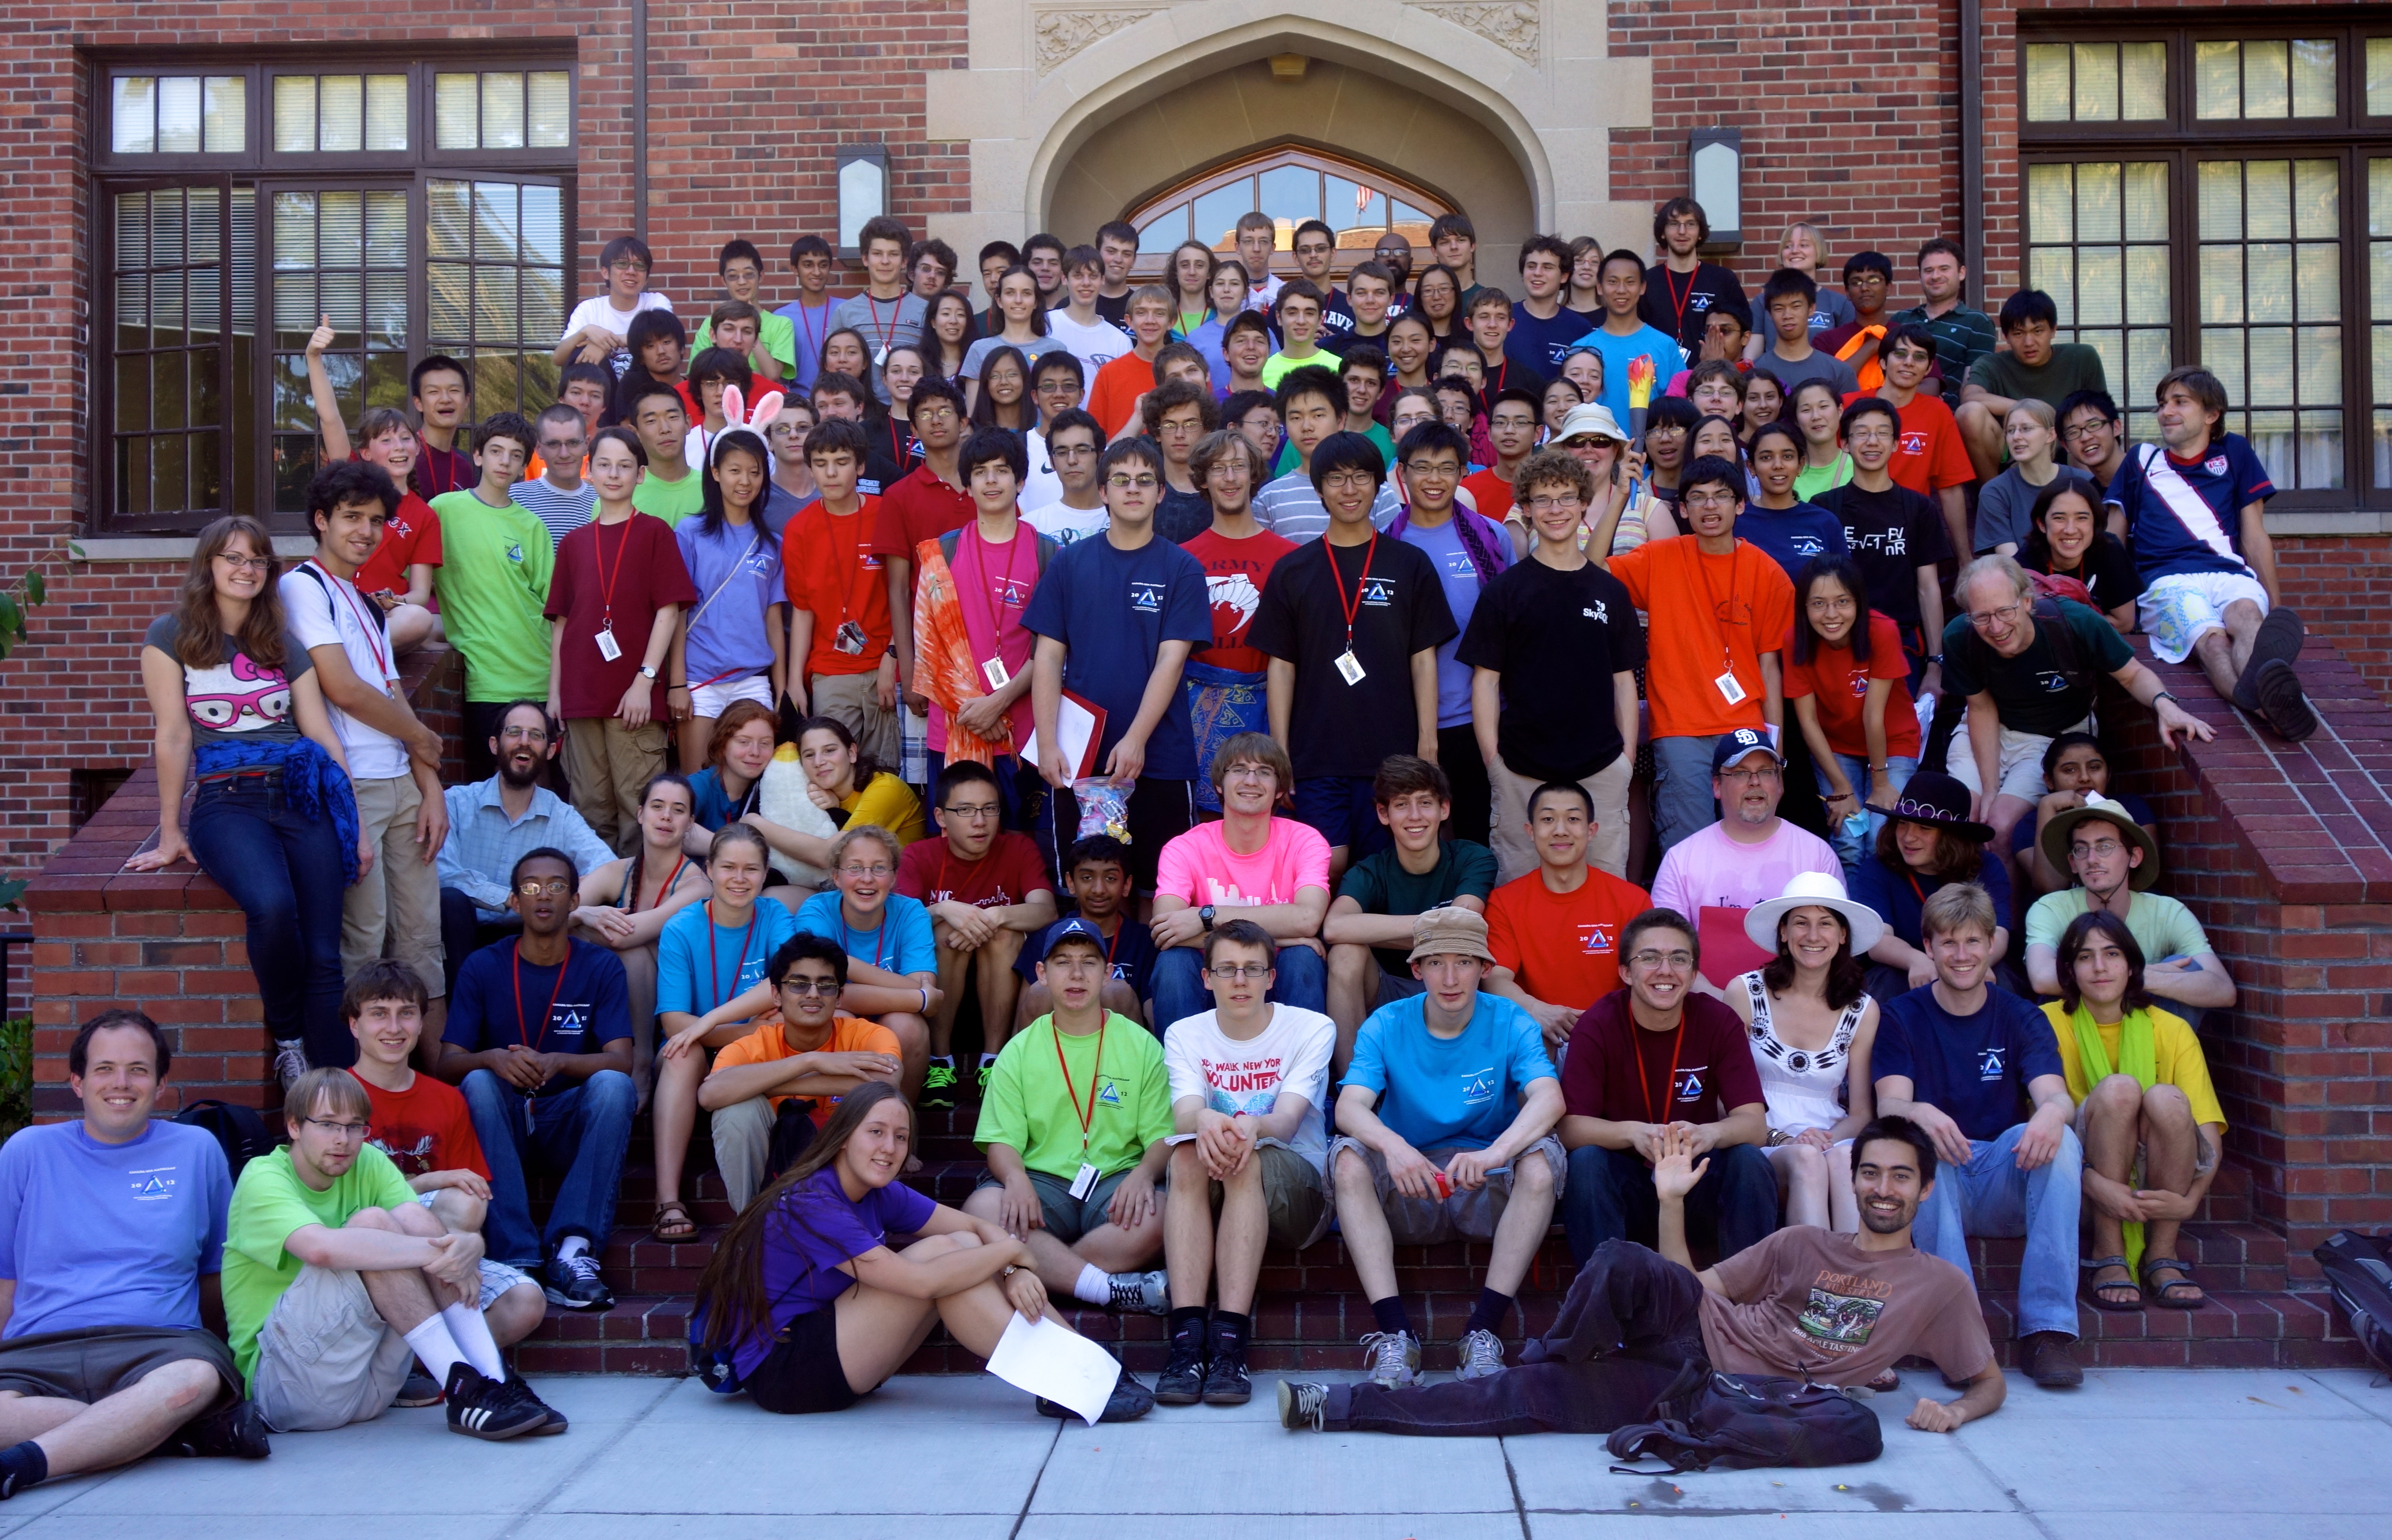 Photo of Mathcamp 2012 at the University of Puget Sound